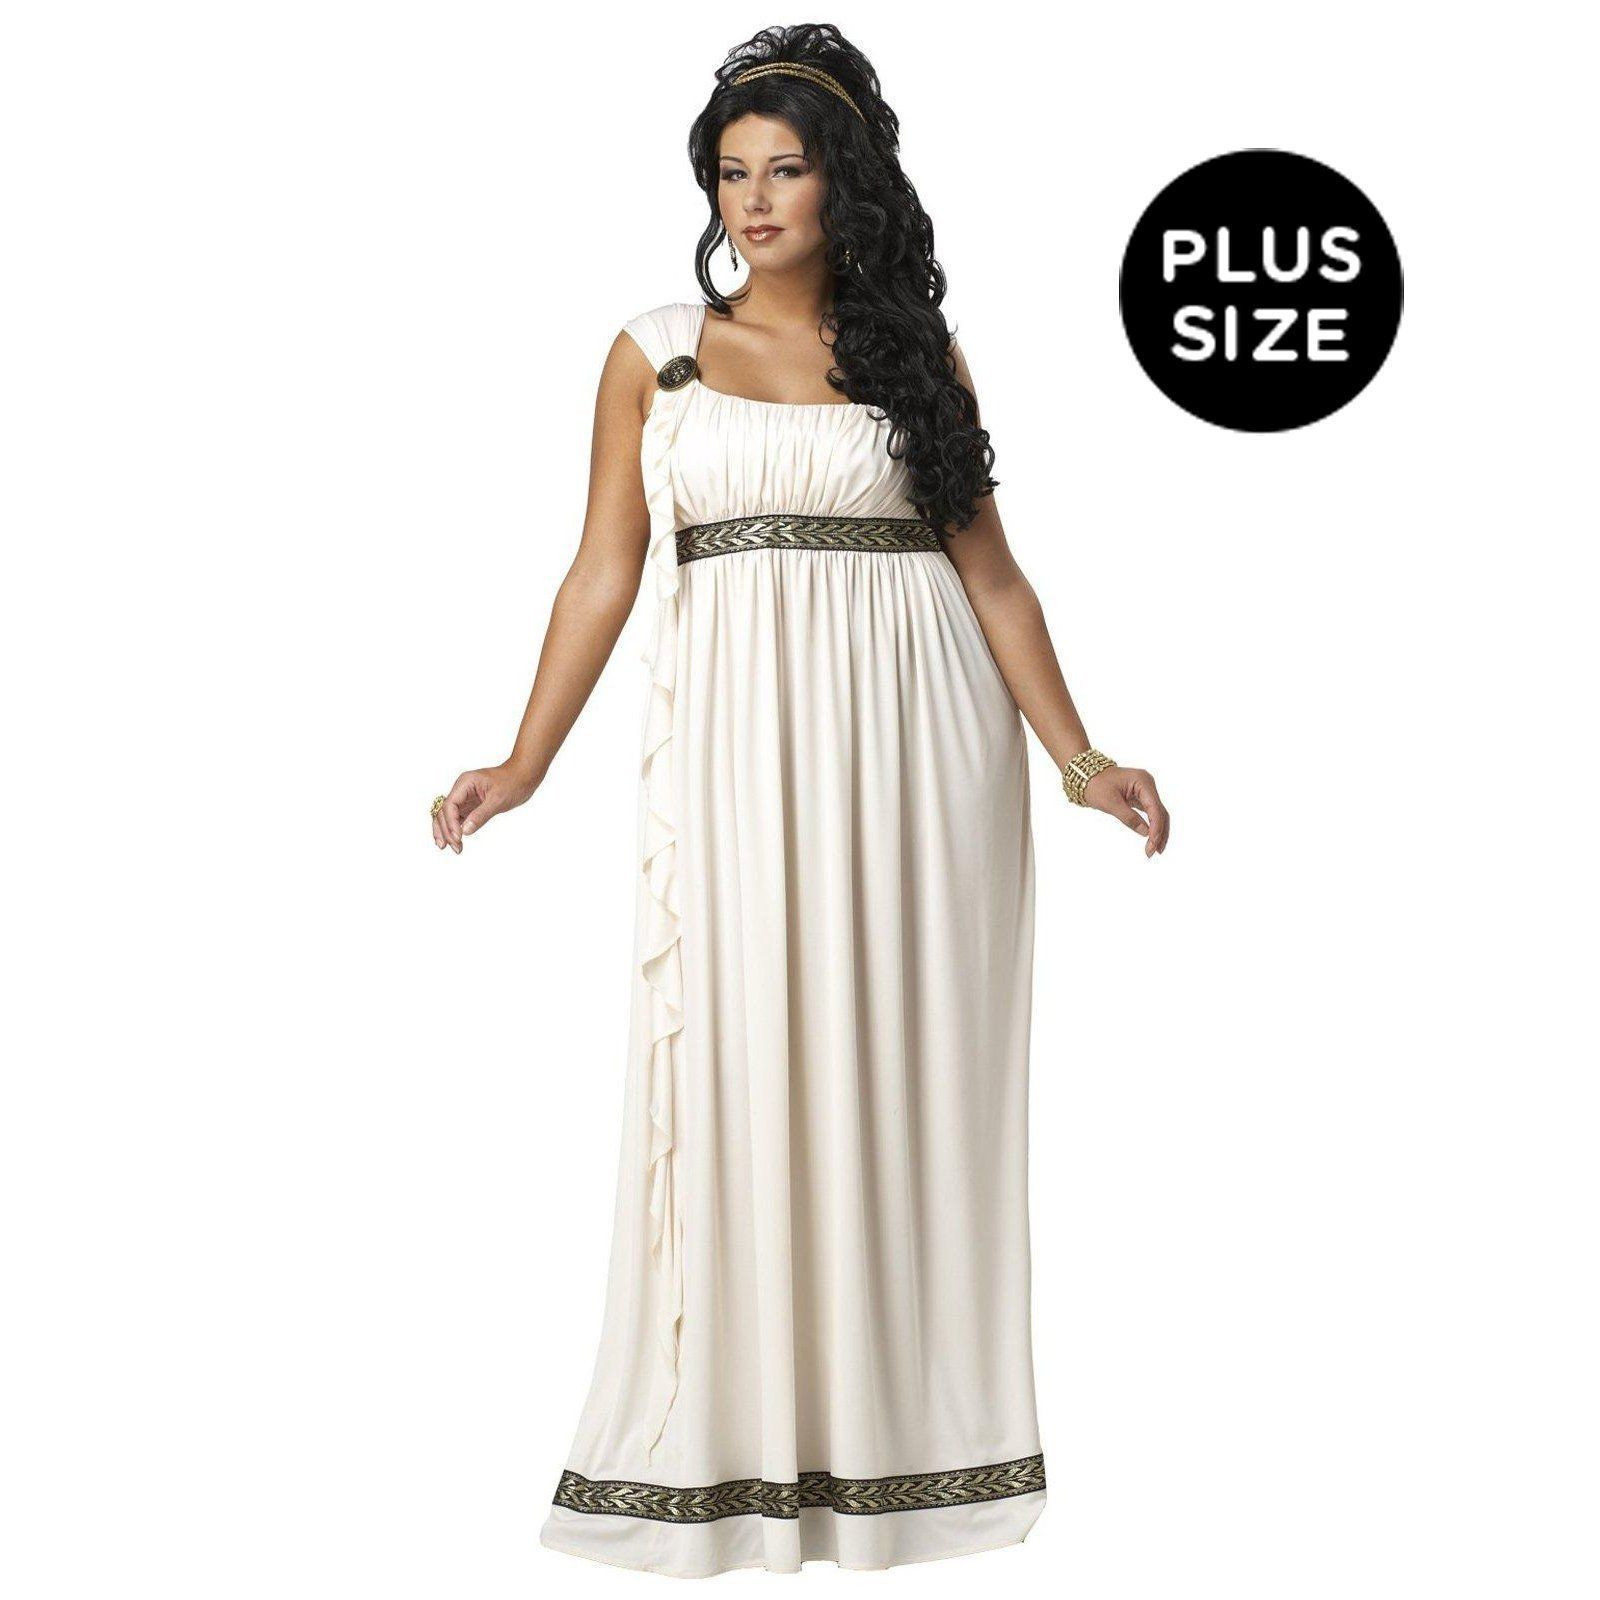 Plus size wedding dresses with red accents  Olympic Goddess Adult Plus Costume  Olympics Goddesses and Size